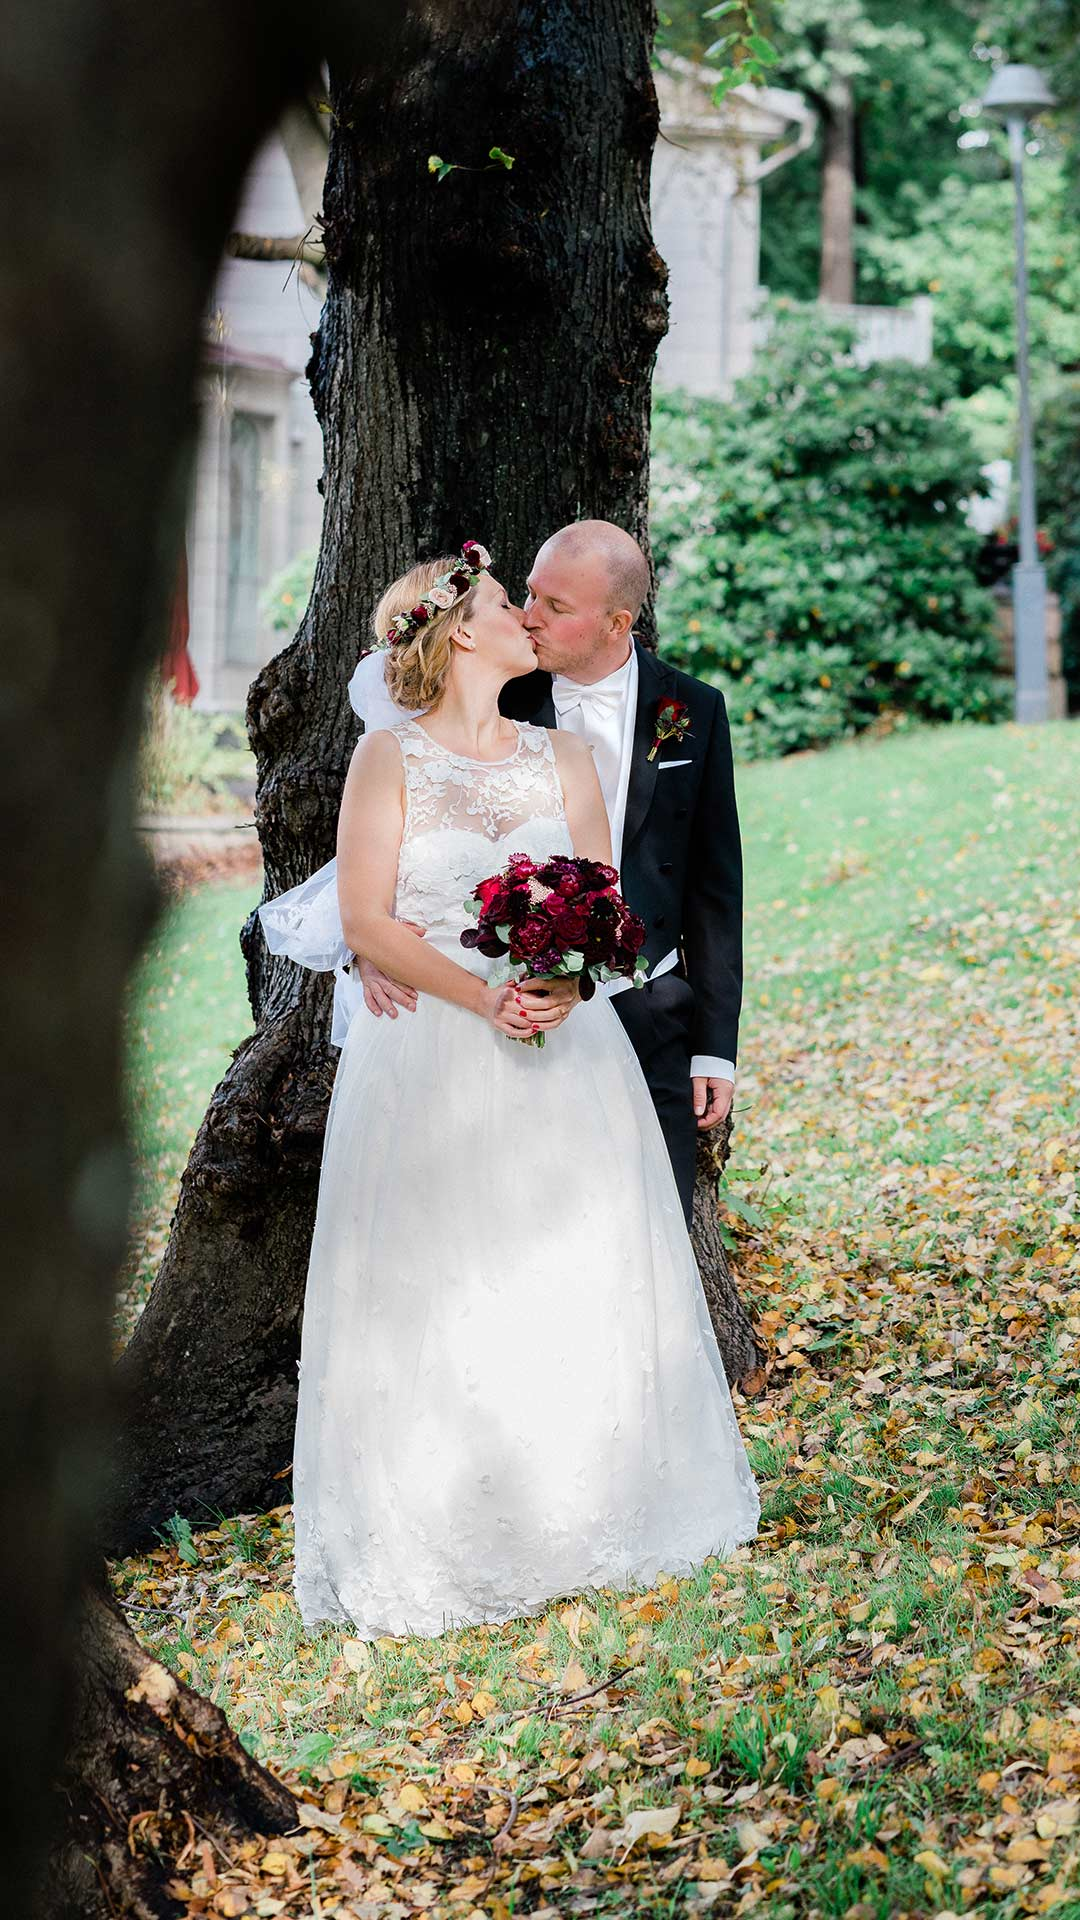 Louisa and Love in wedding photography